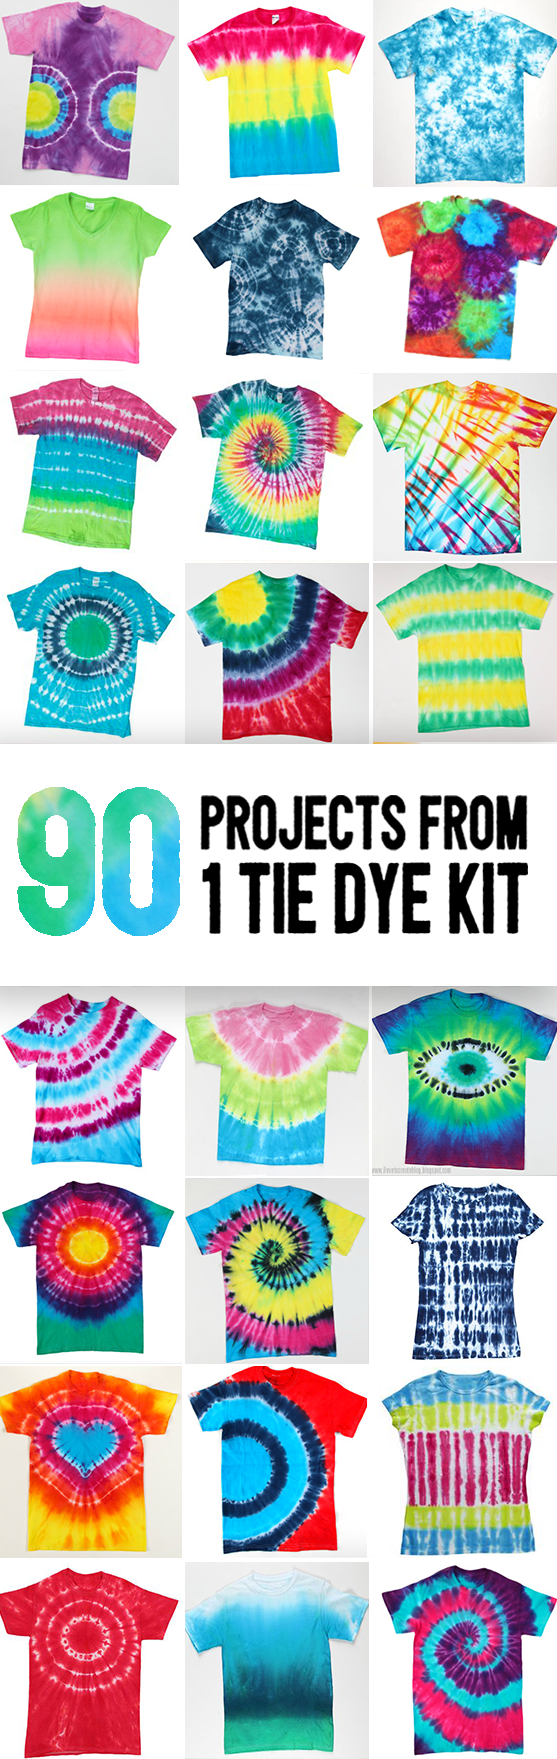 Make Up To 90 Shirts With This Epic Tie Dye Kit Filled To Max With